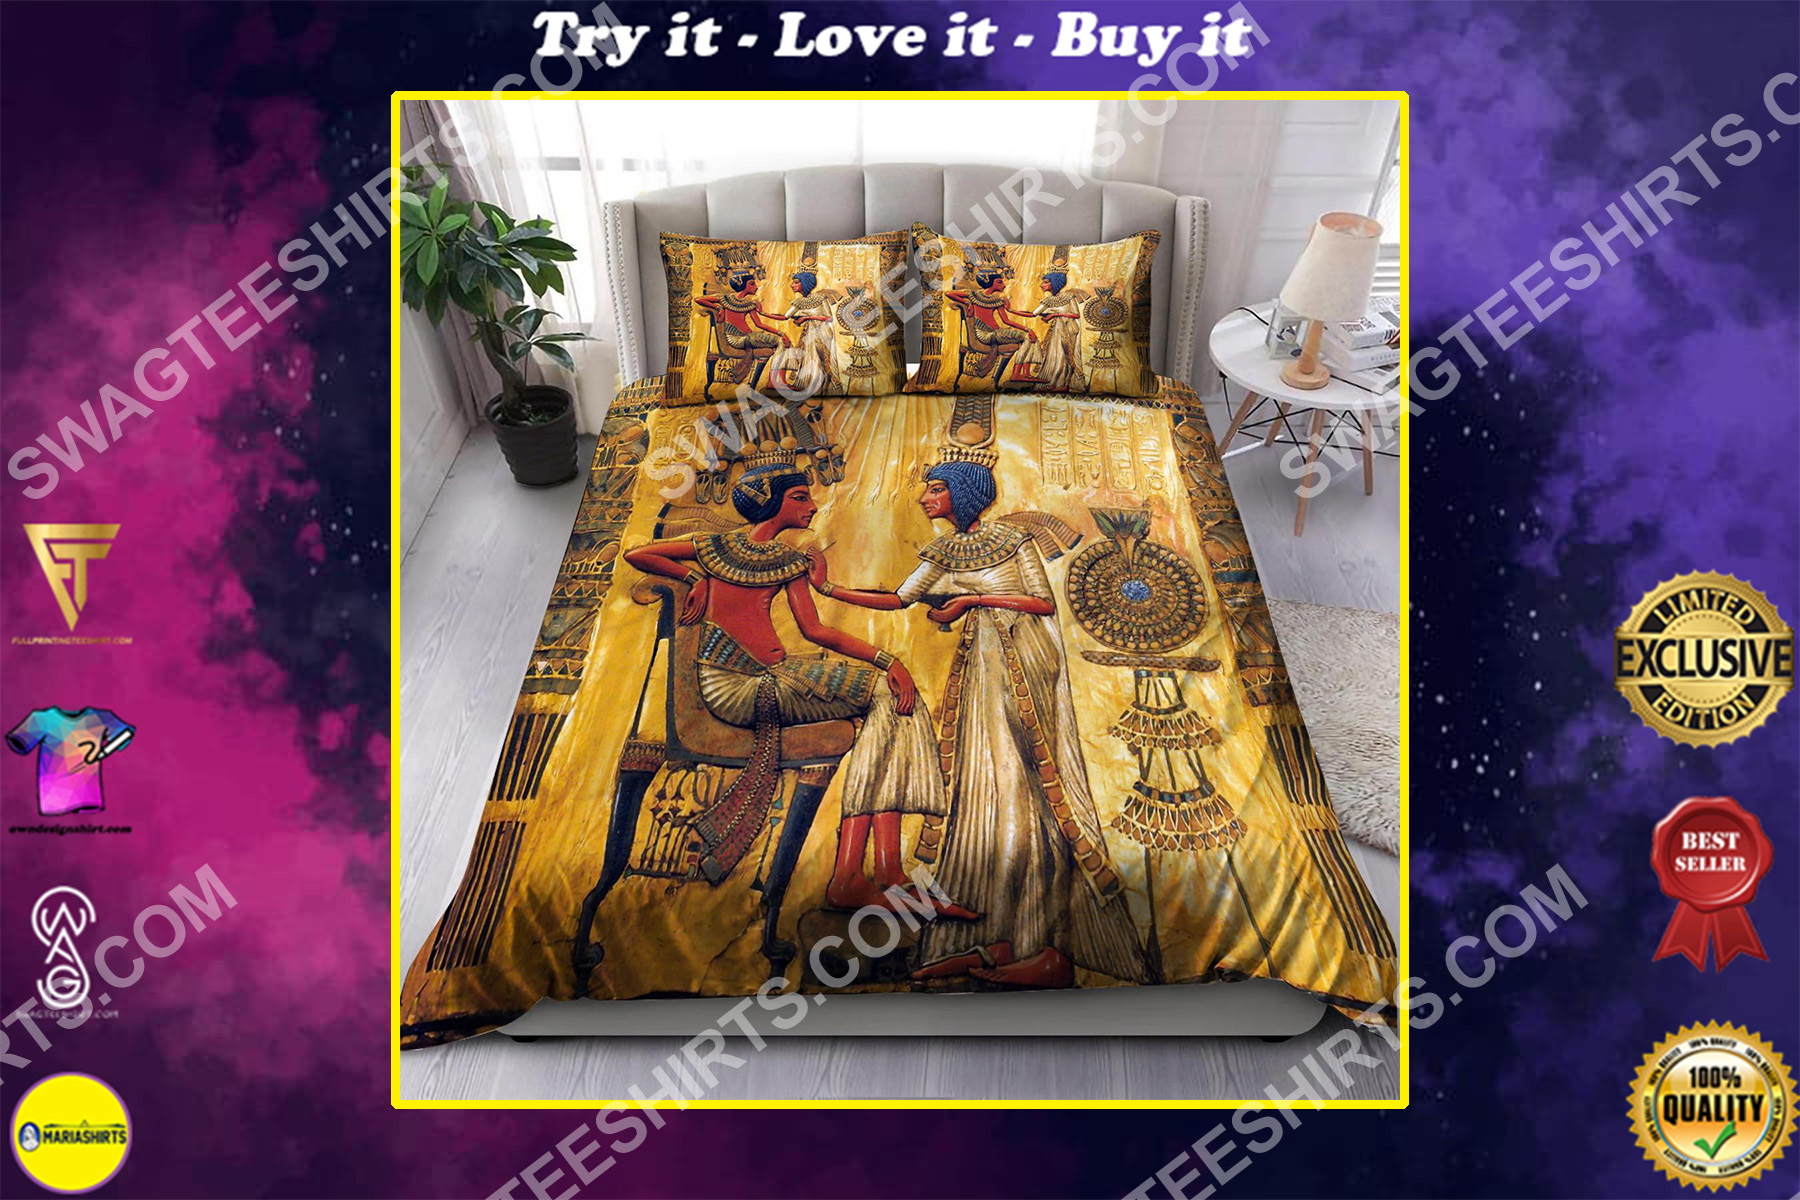 the egyptian mythology king and queen all over printed bedding set